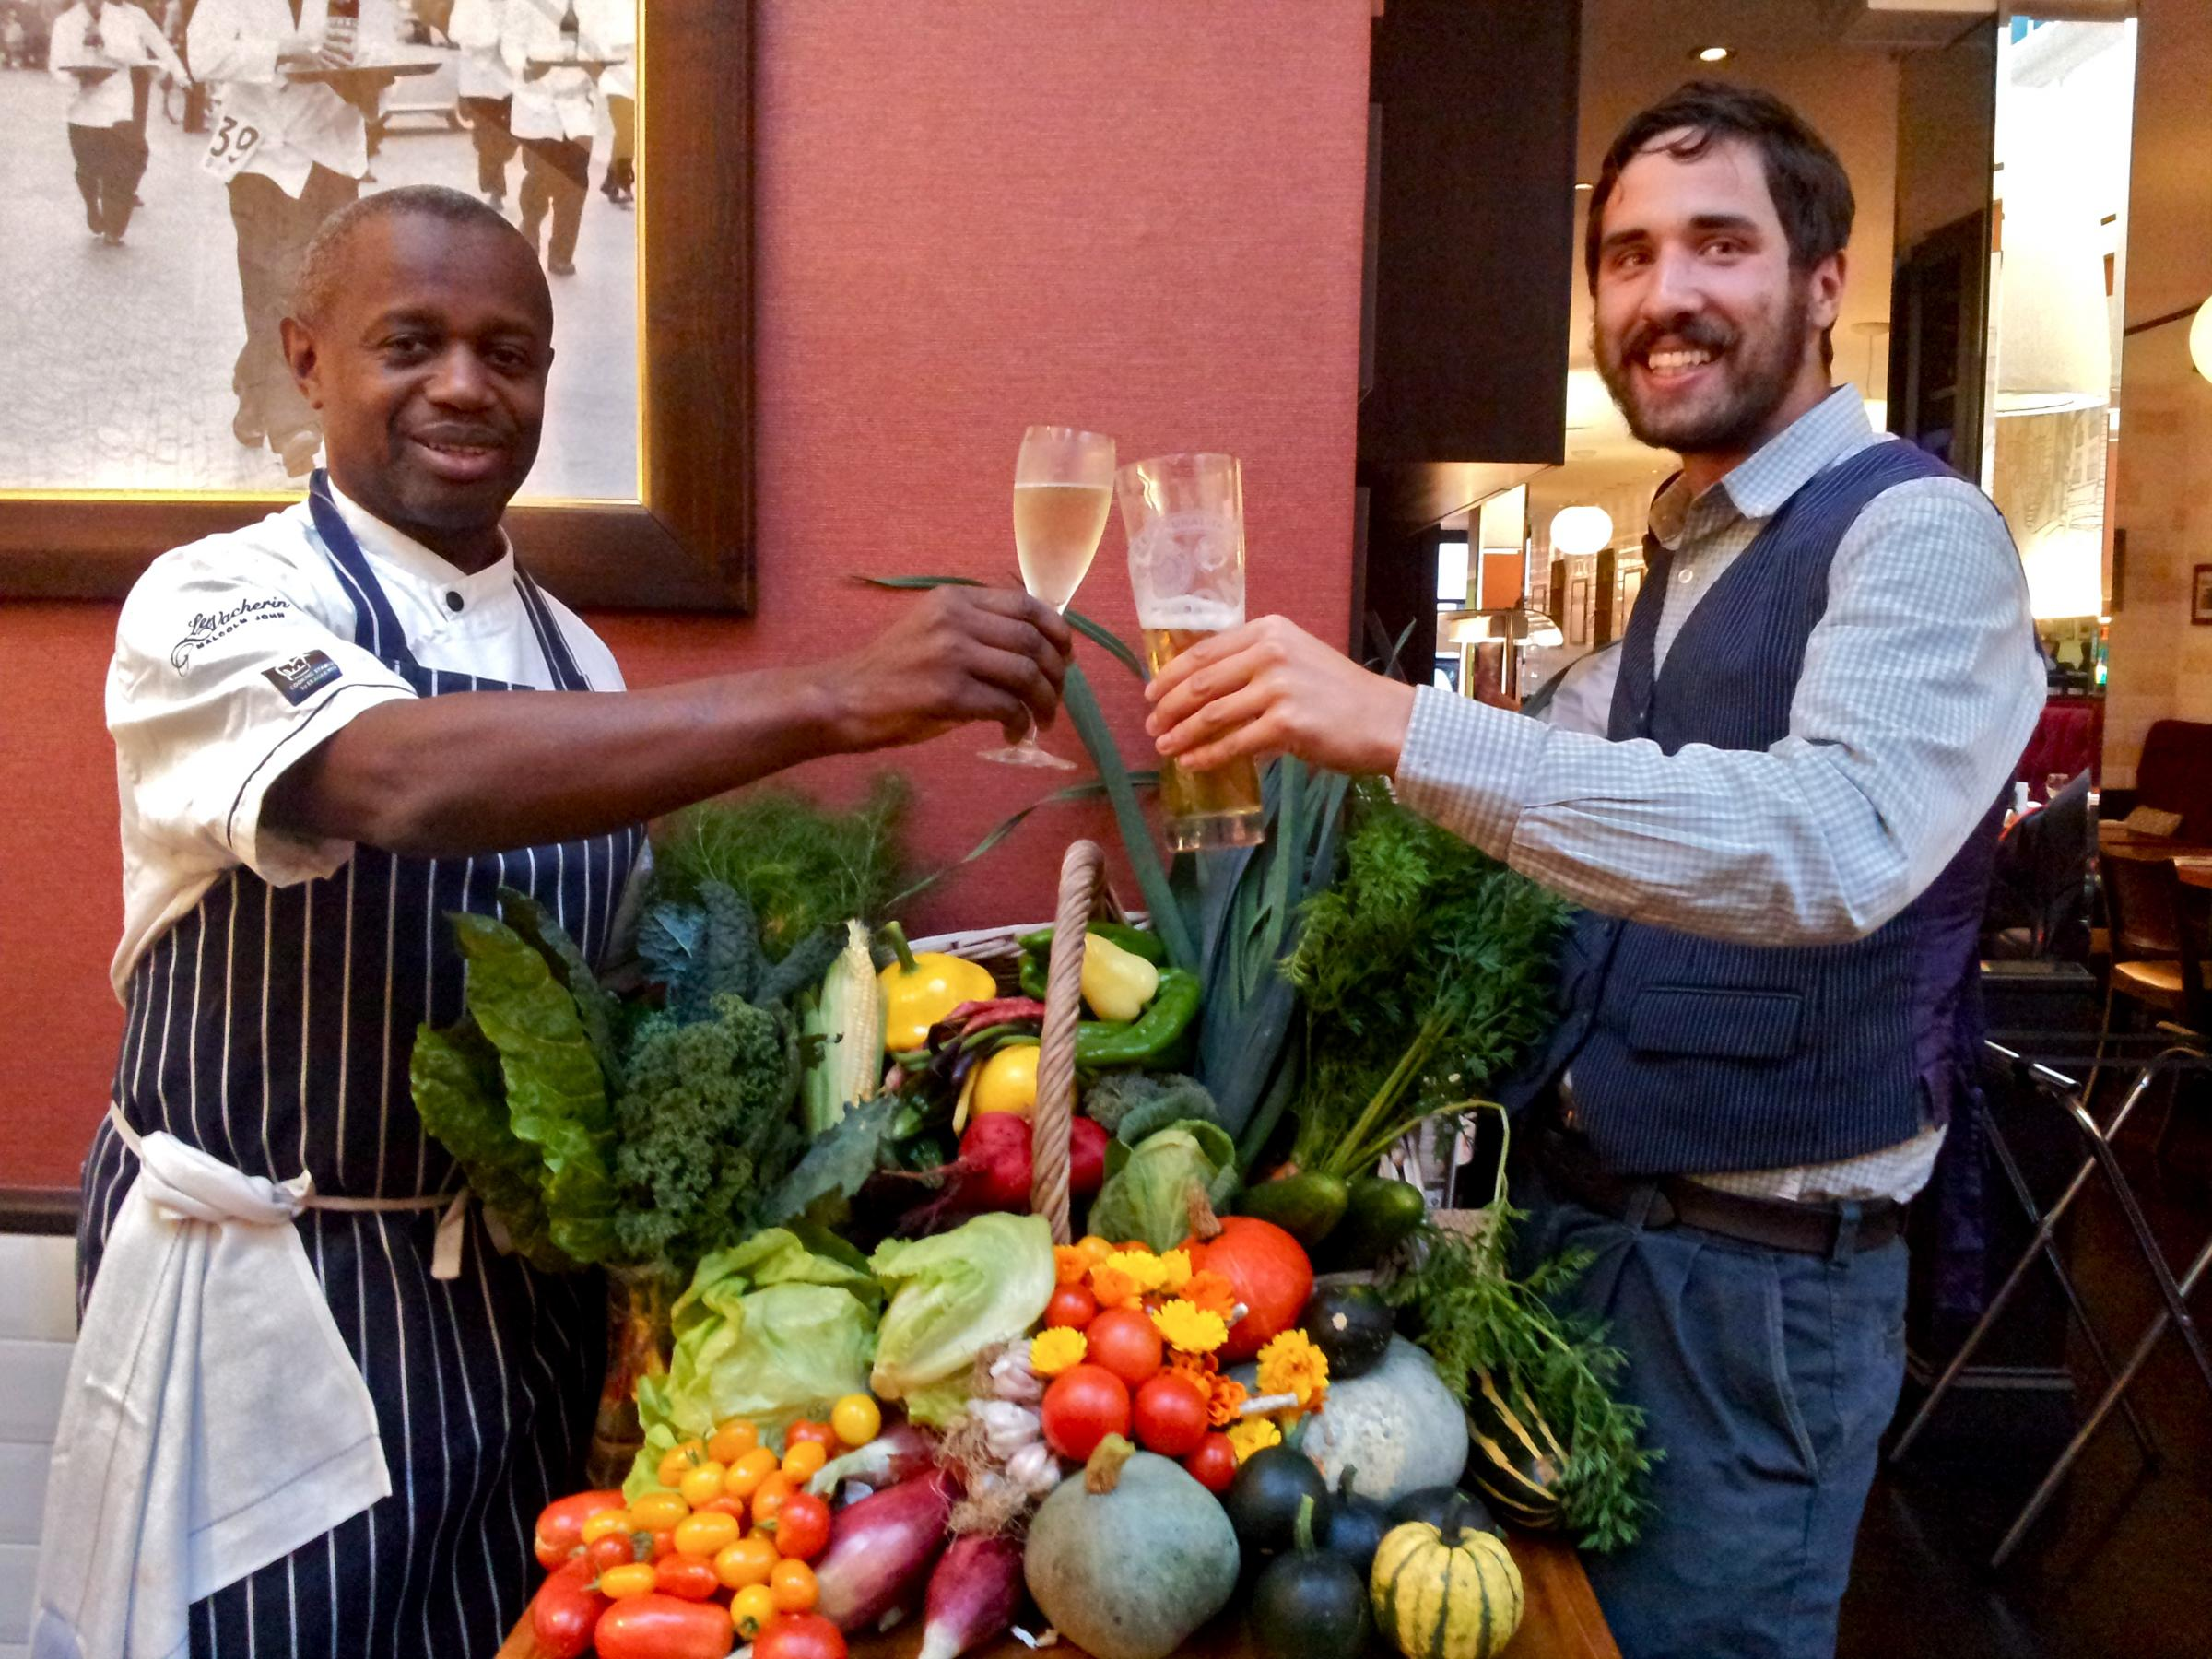 Sutton Community Farm's head grower Joris Gunawardena (right) with Brasserie Vacherin chef Malcolm John at a fundraising event